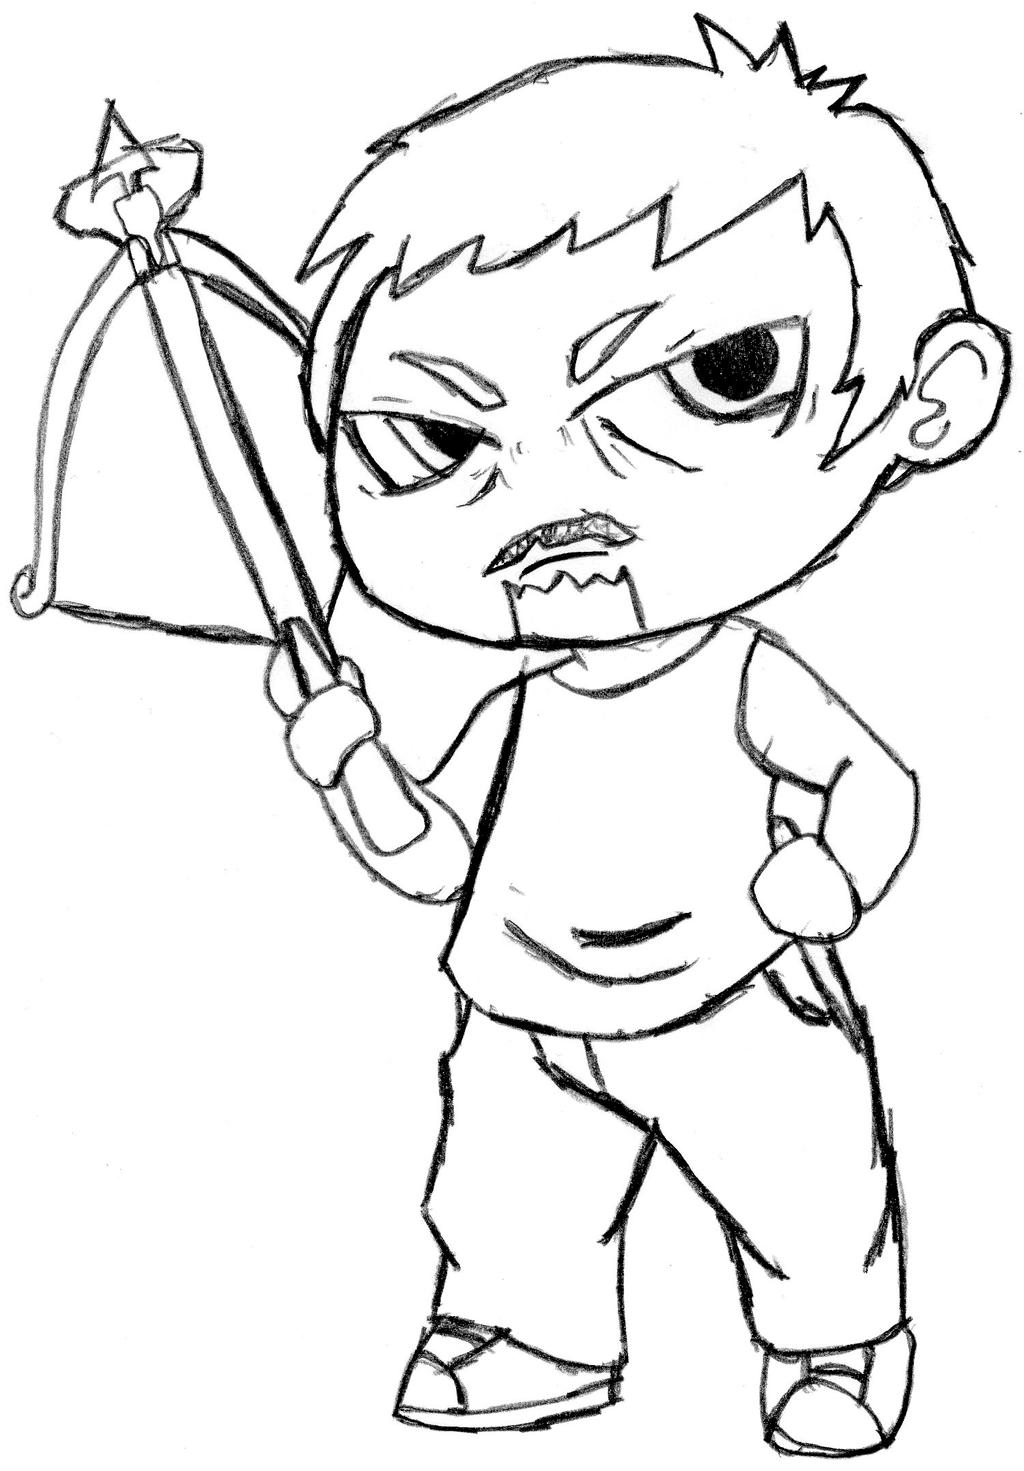 daryl dixon coloring pages - photo#6